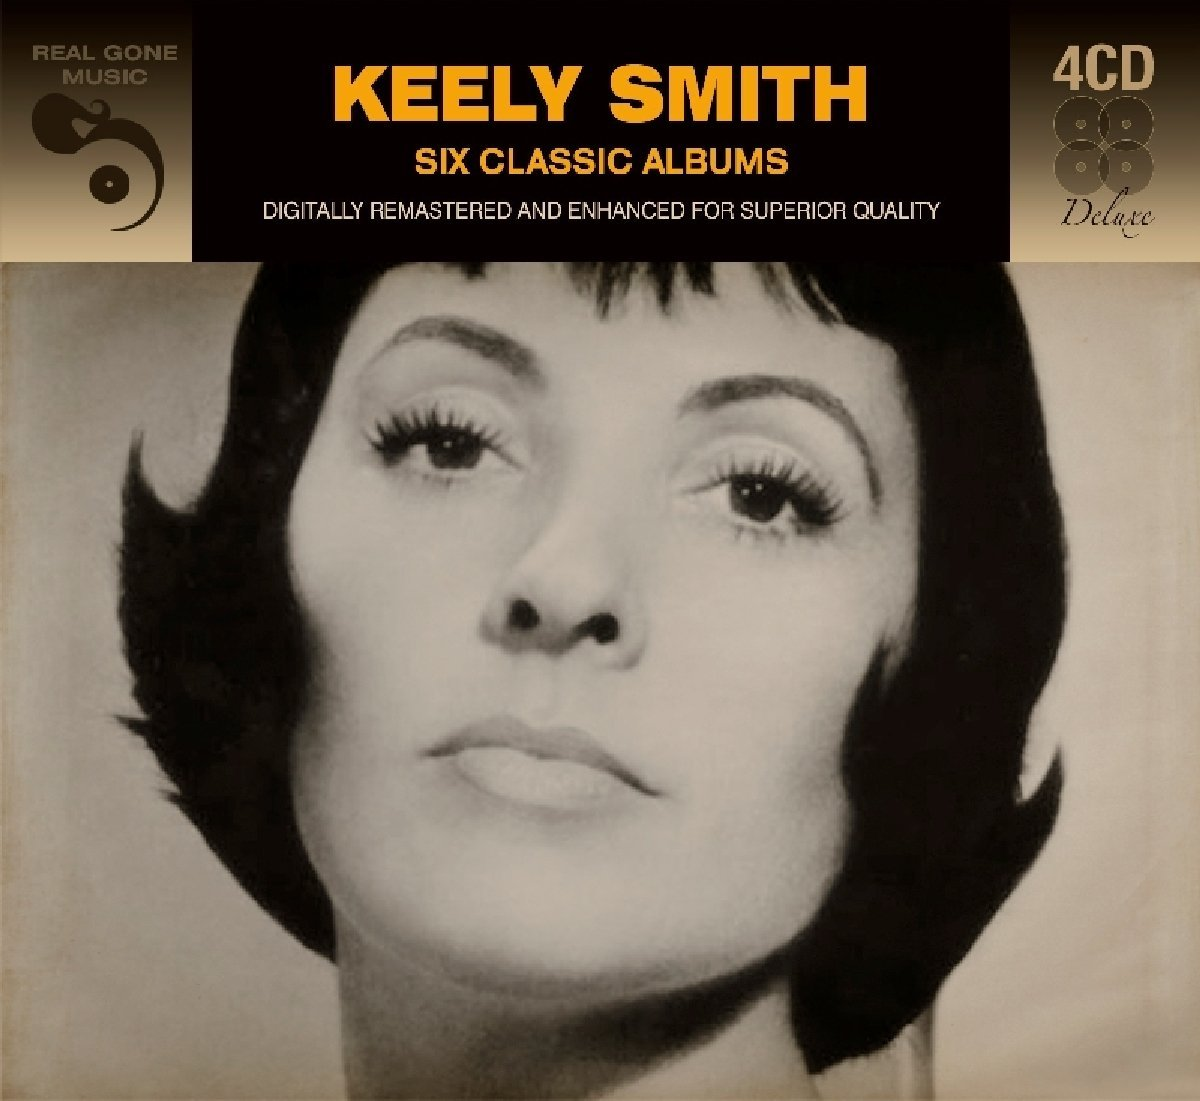 KEELY SMITH - 6 Classic Albums cover